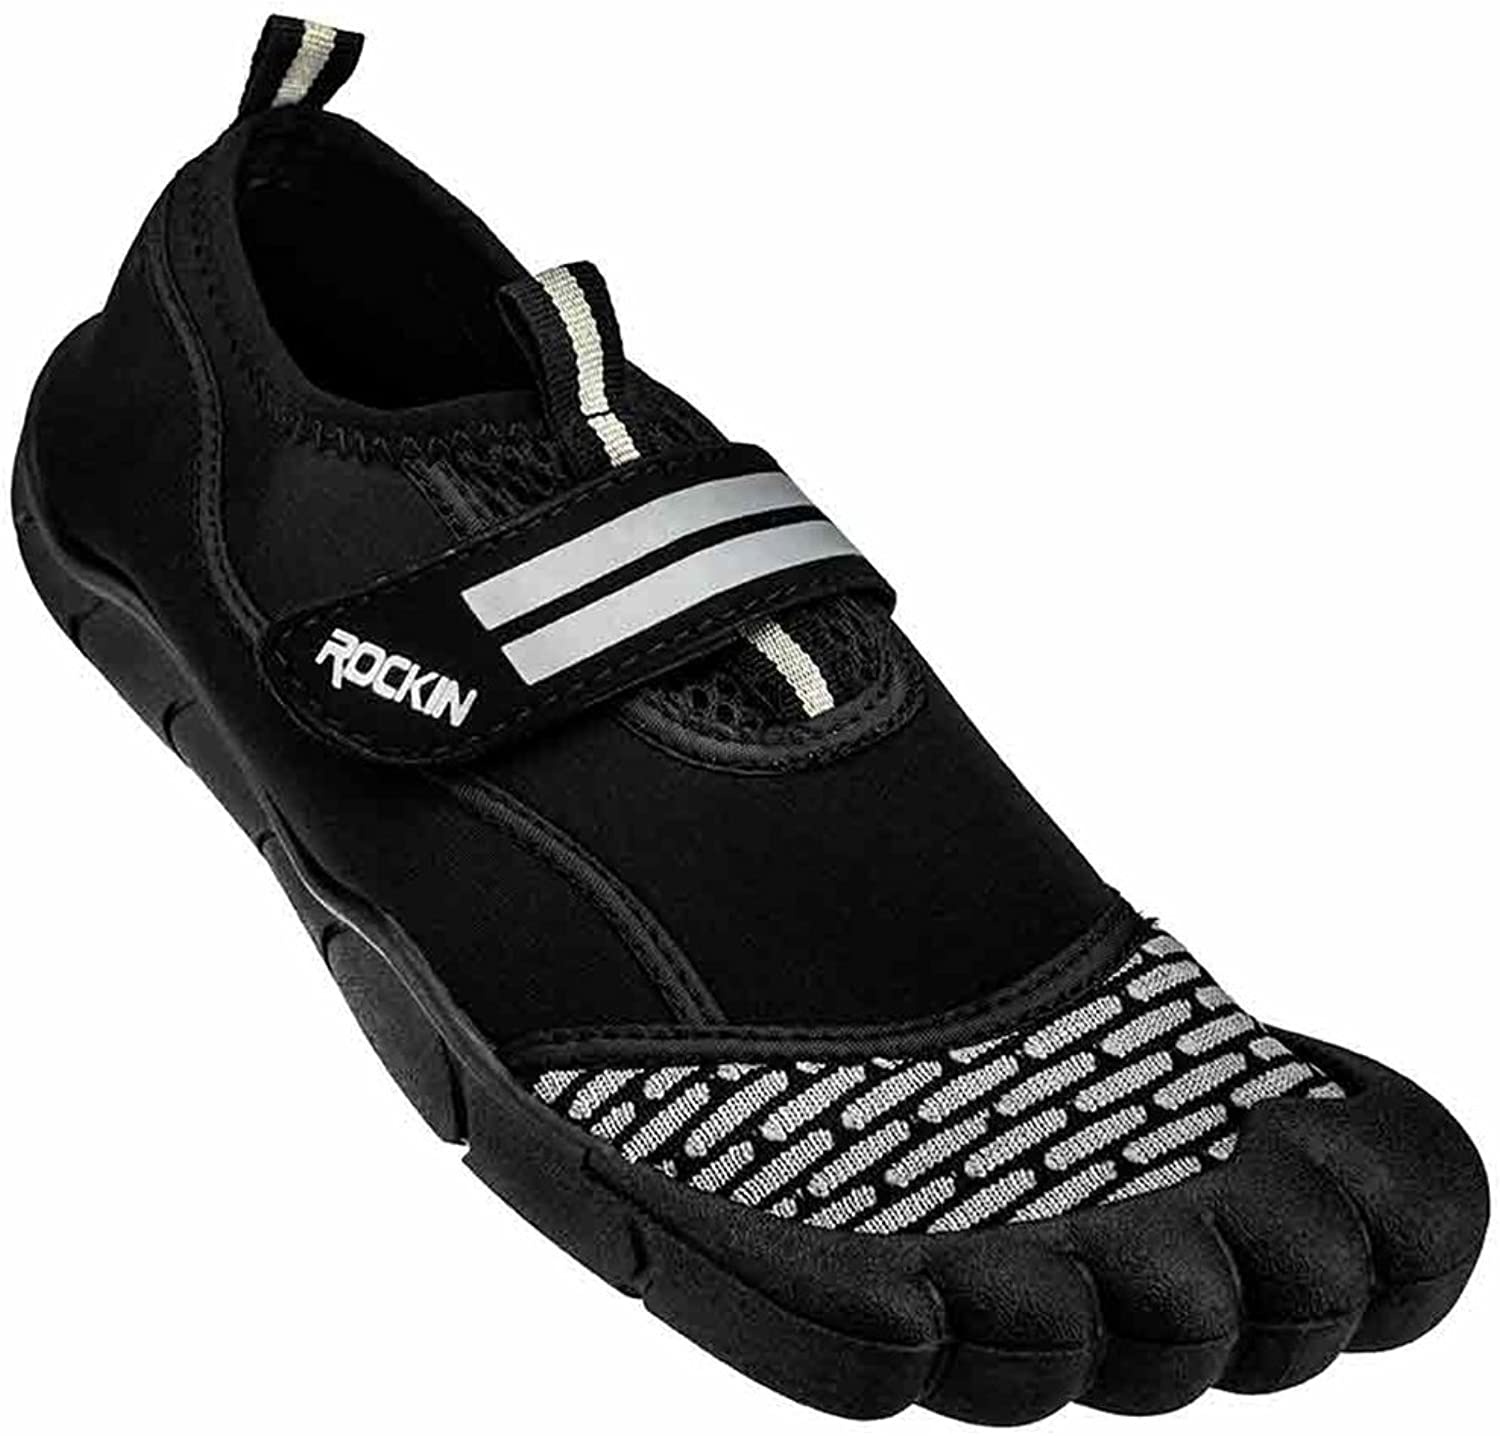 Rockin Footwear Mens Rockin Aqua Power Foot Water shoes